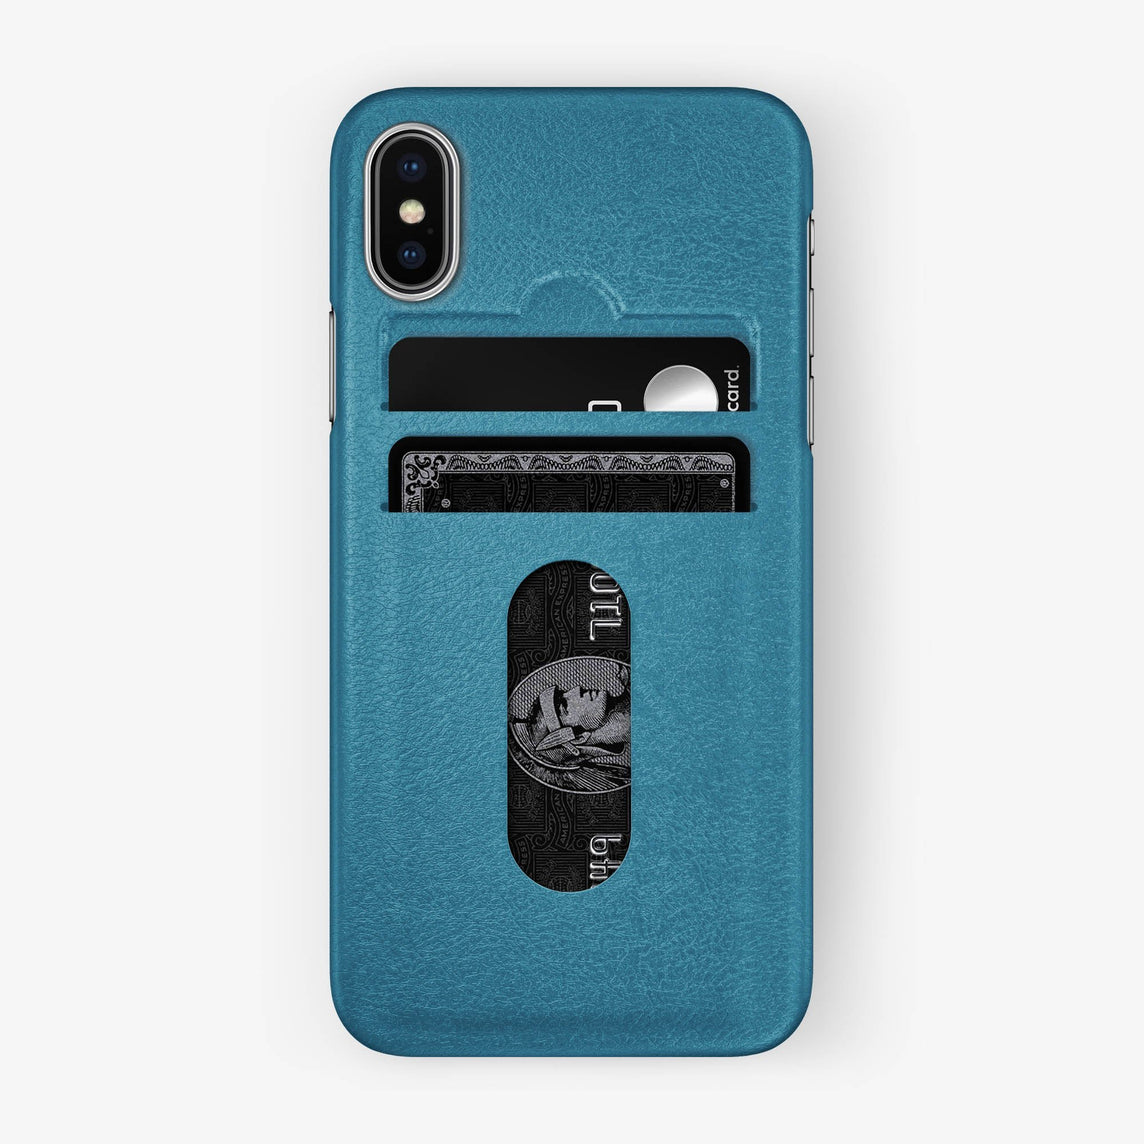 Teal Calfskin iPhone Card Holder Case for iPhone X finishing stainless steel - Hadoro Luxury Cases